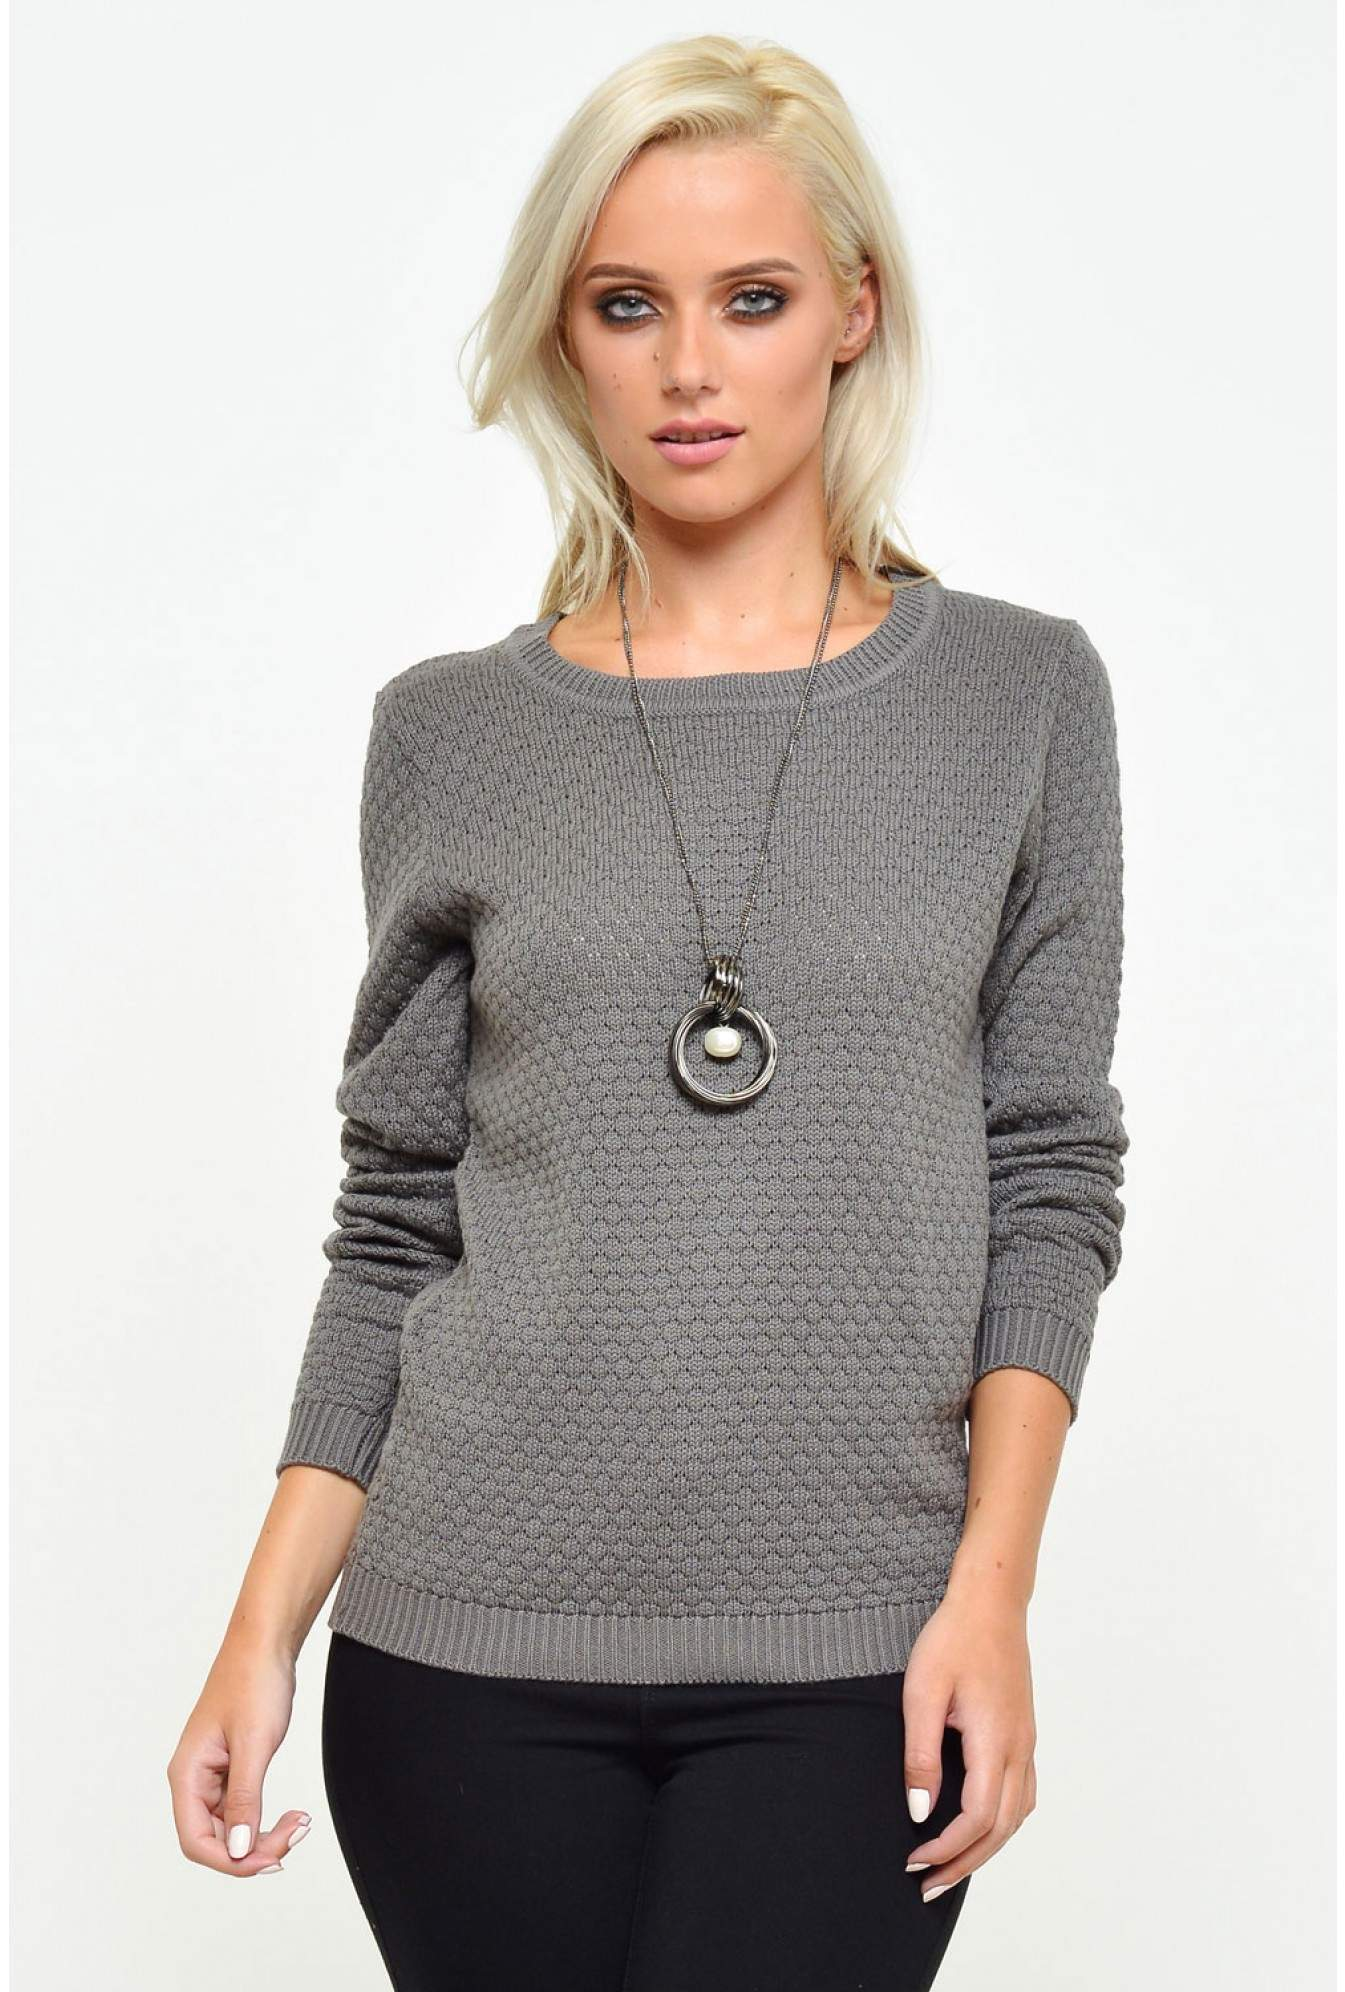 9f6c4c6cb57 More Views. Share Knit Top in Granite Grey